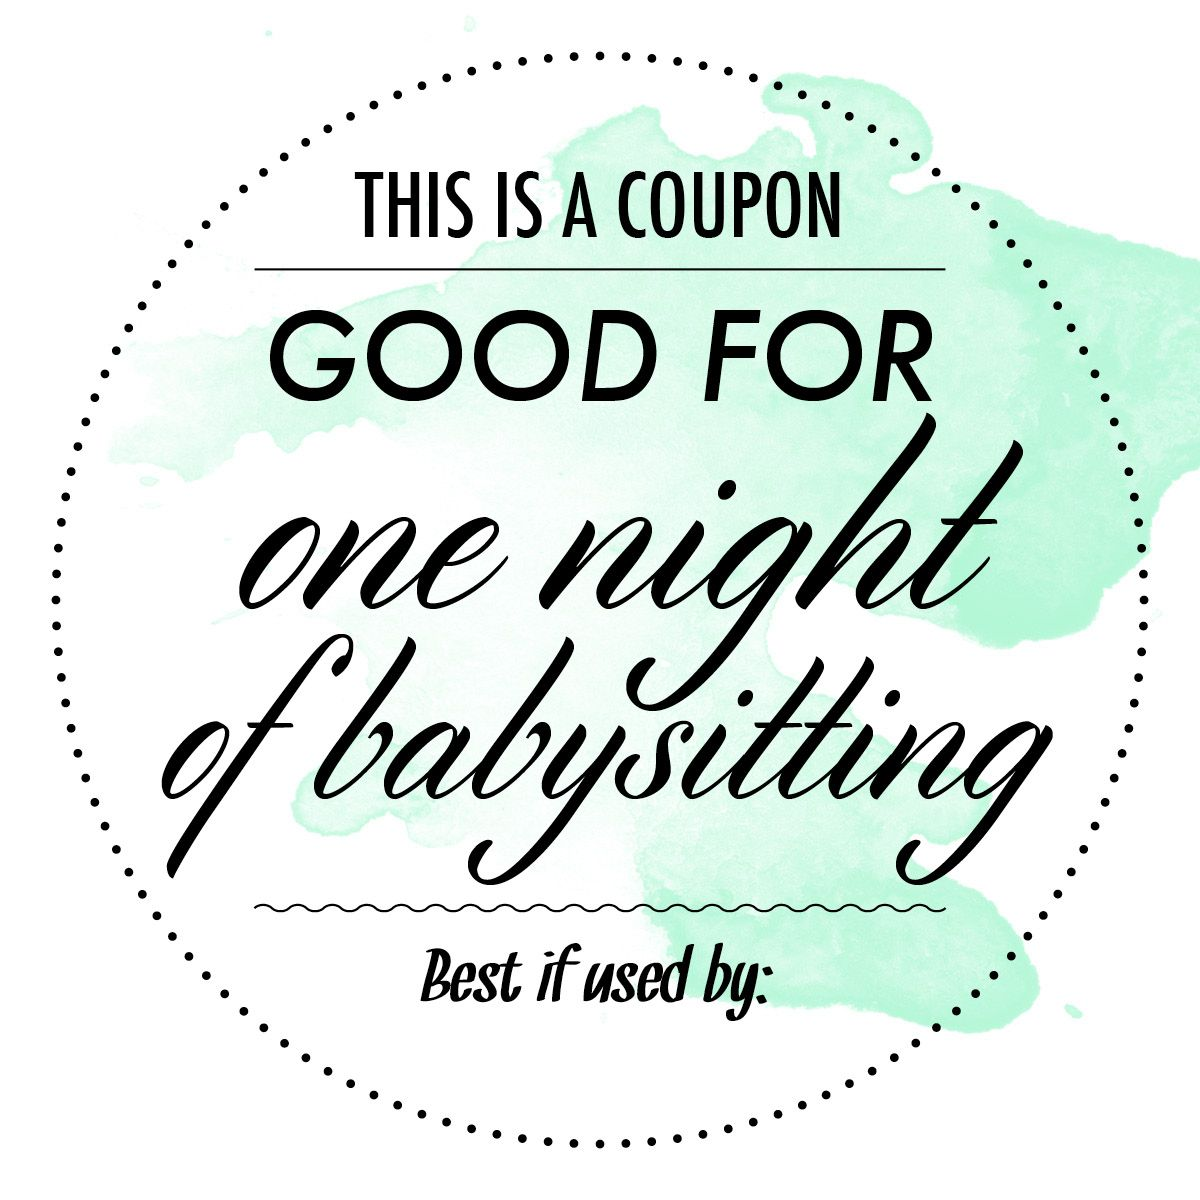 babysitting coupons printable pinned by babysitting coupon google search